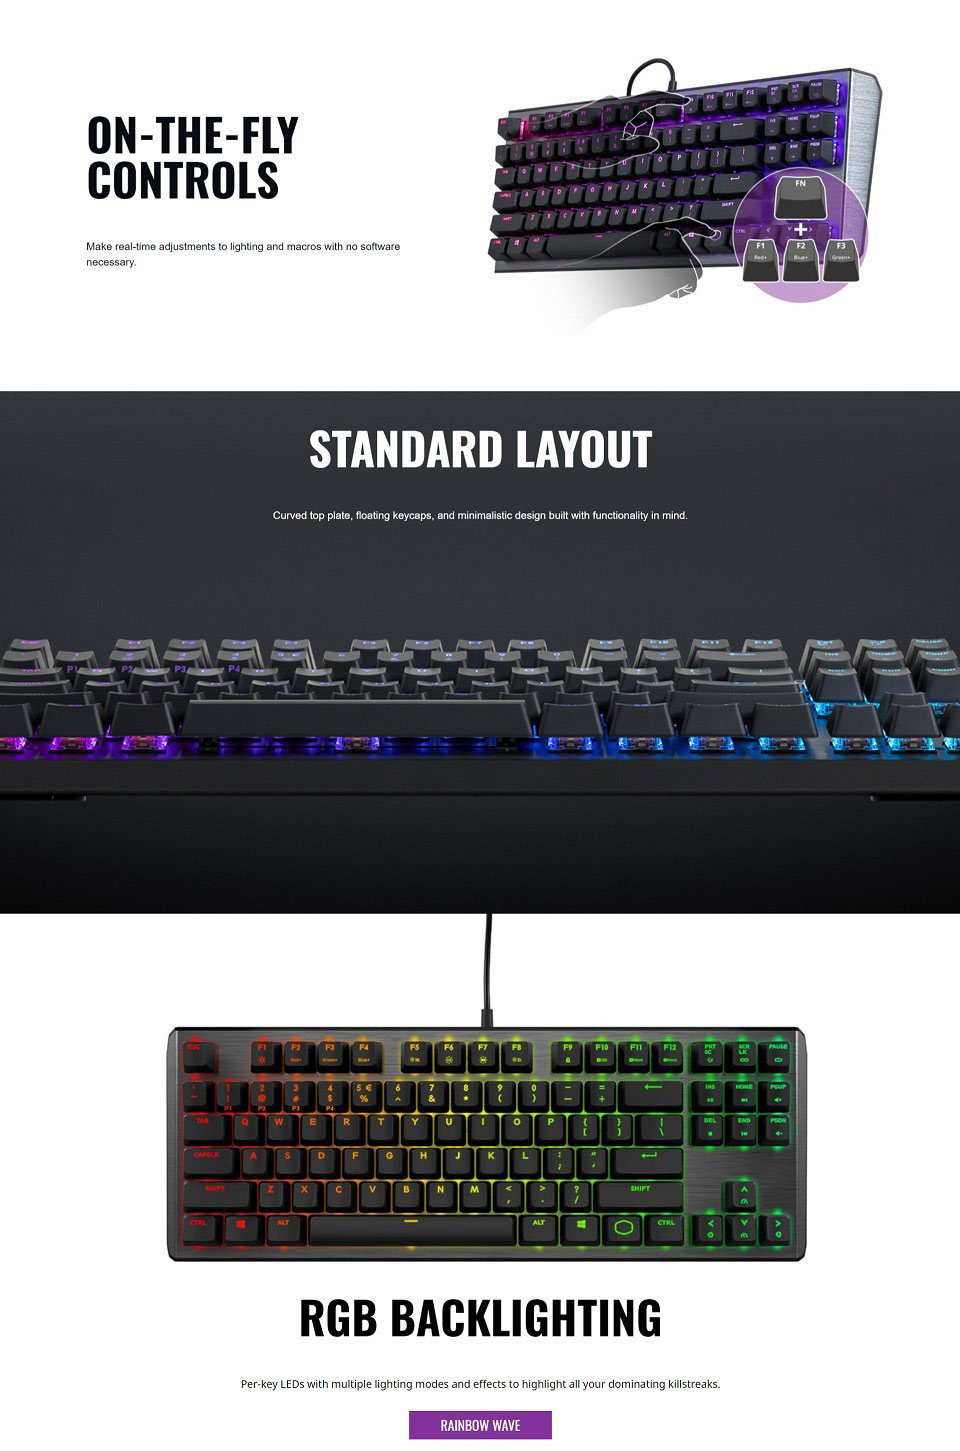 Cooler Master MasterKeys CK550 RGB Red Switch features